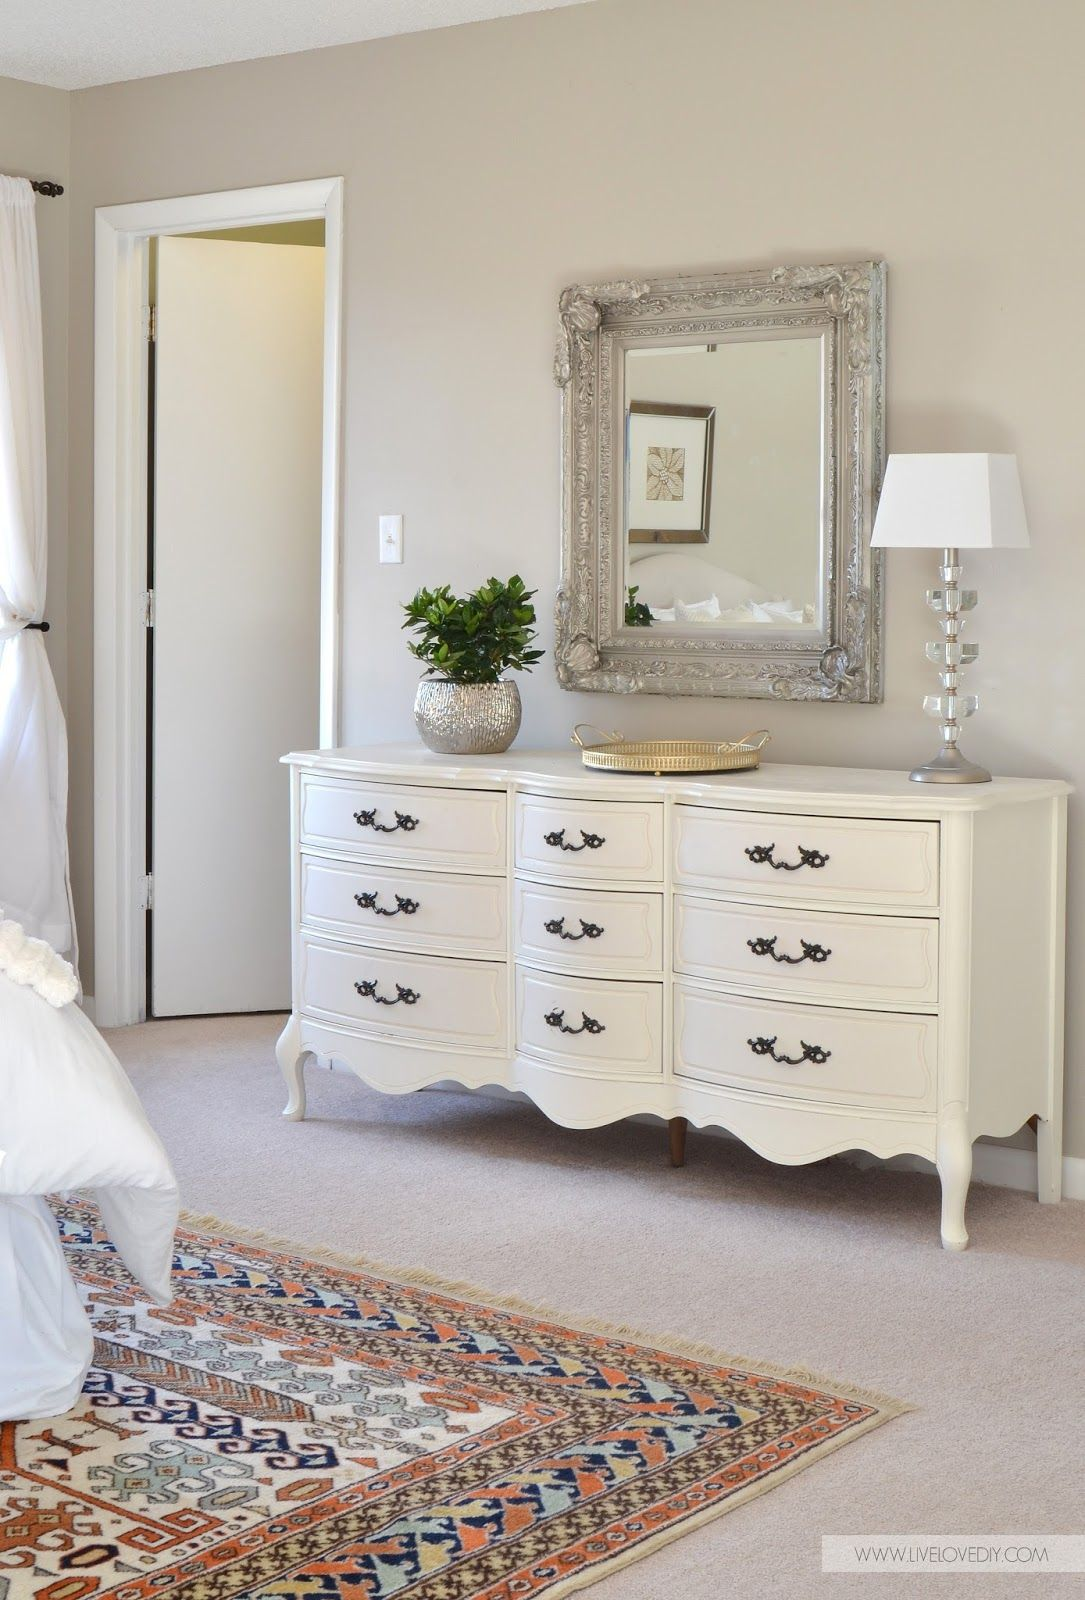 7 Cheap And Easy Bedroom Update Ideas Every Girl Needs